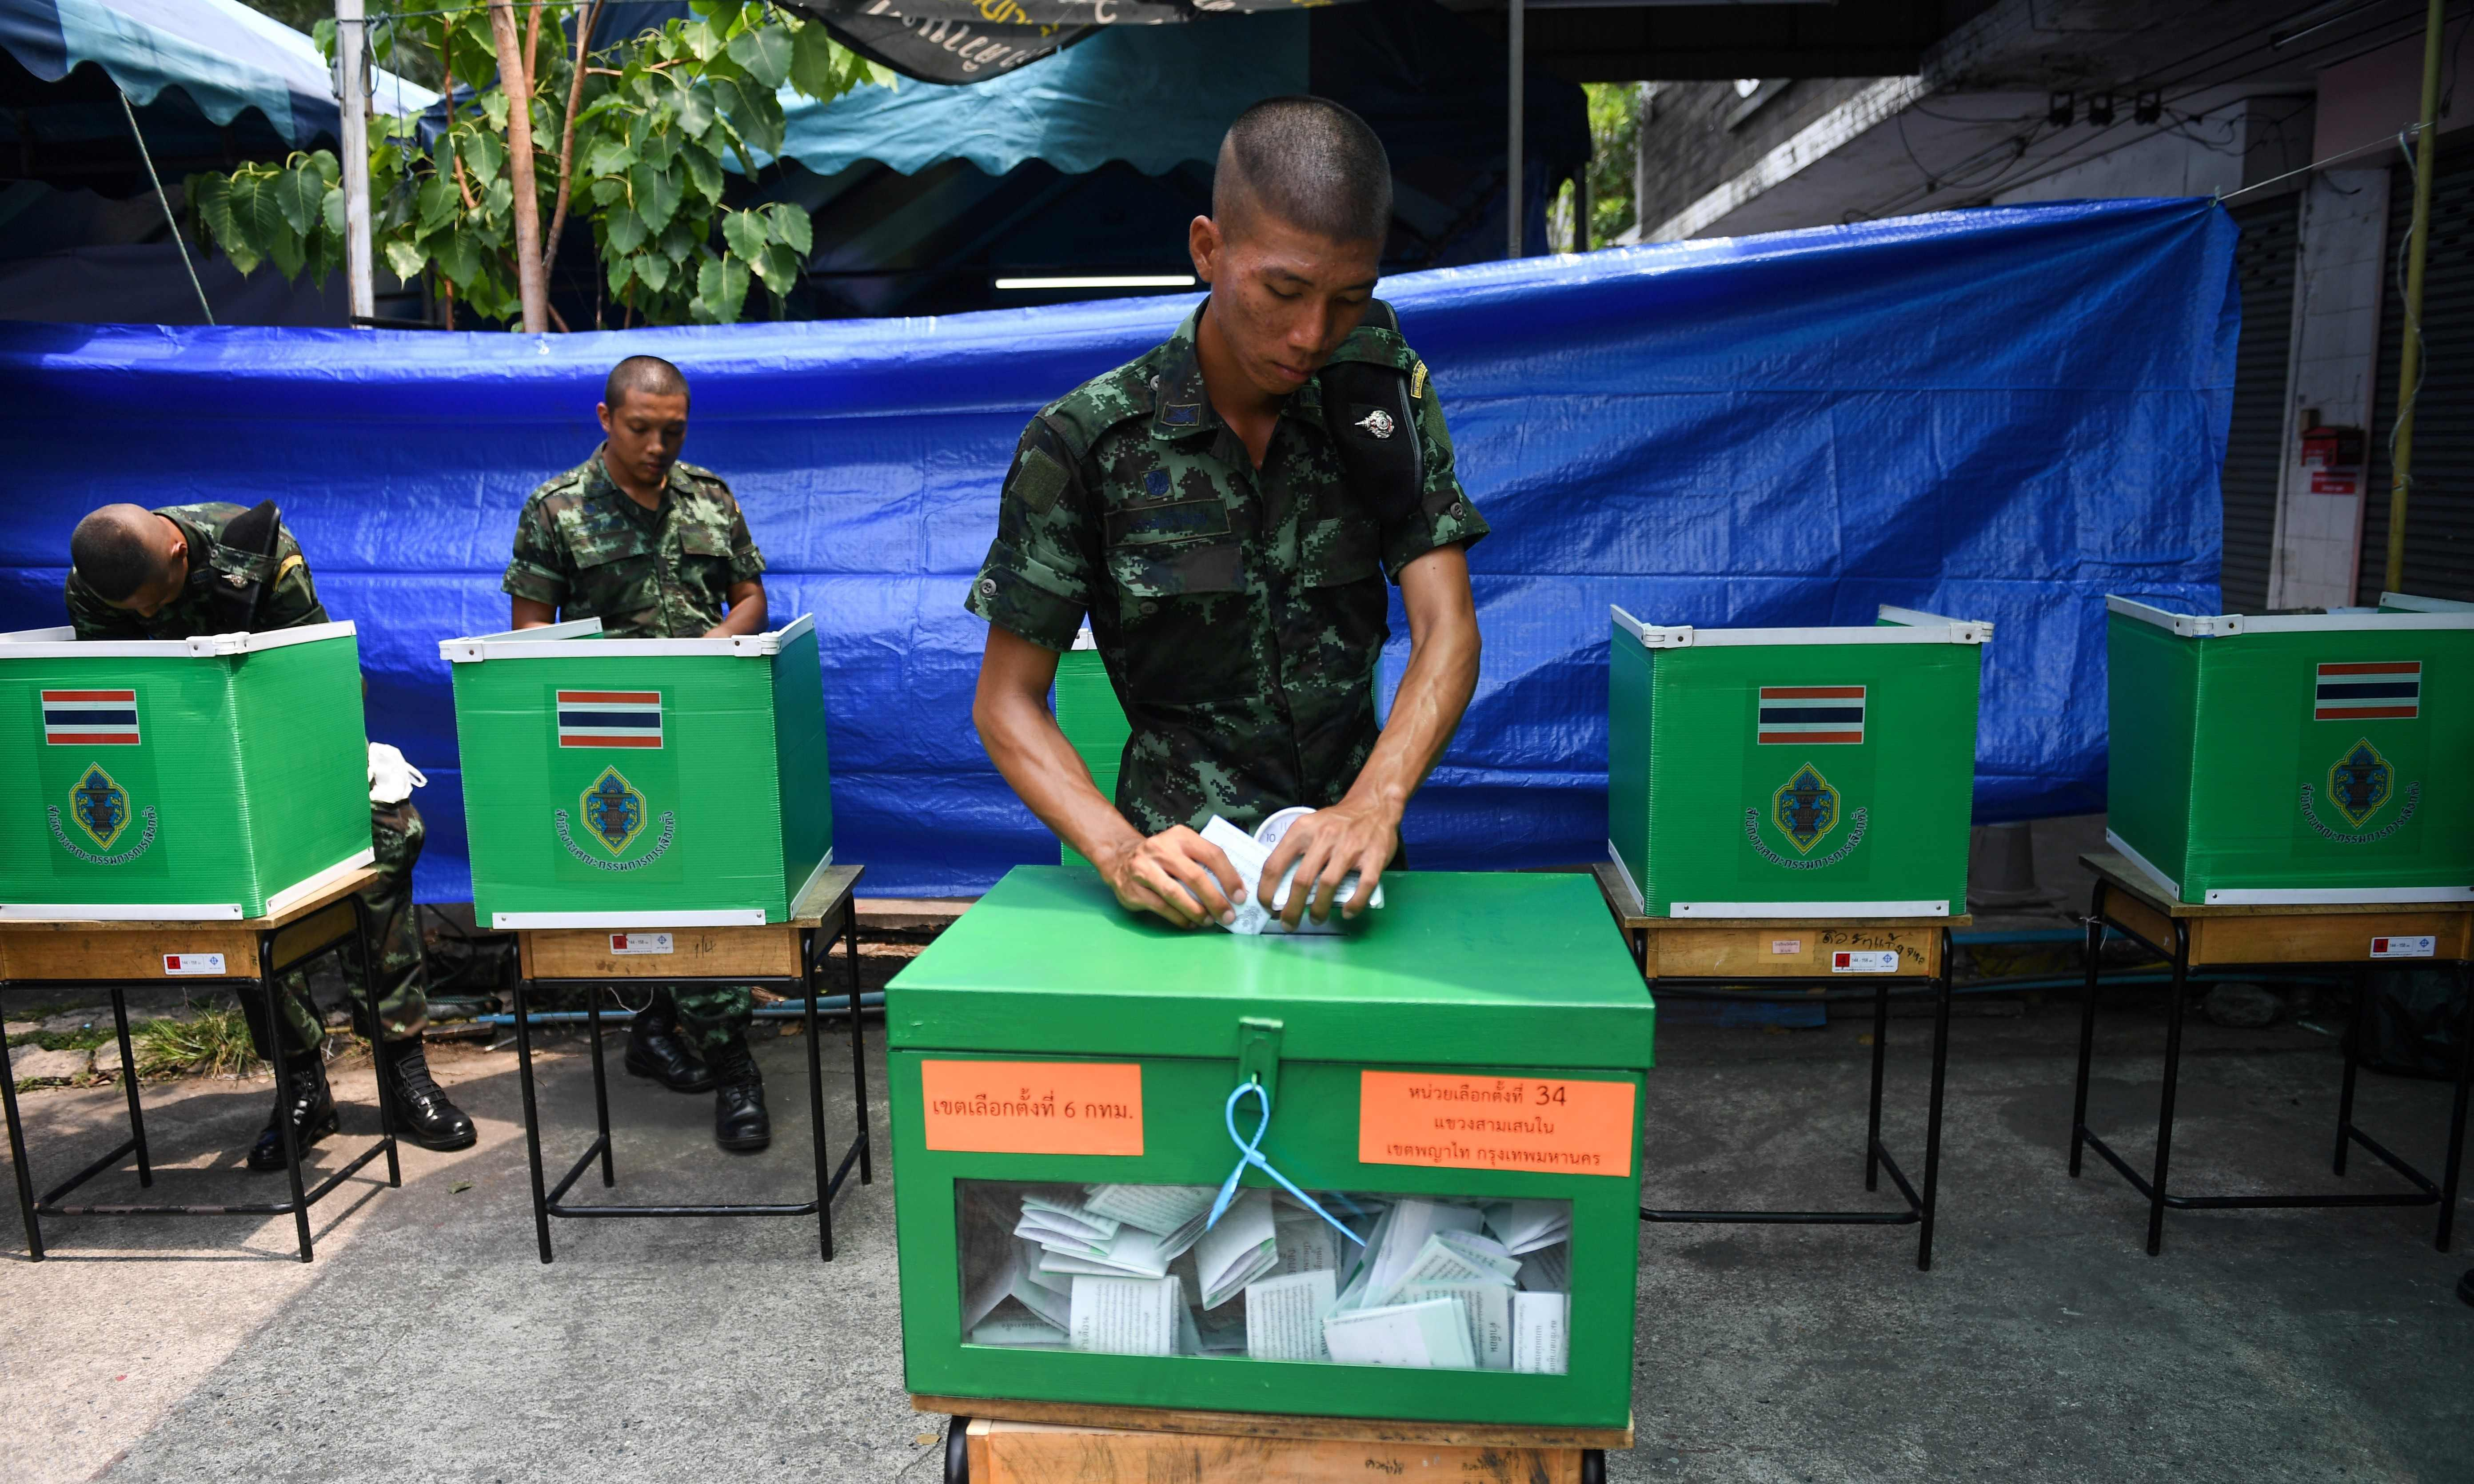 Pro-military party may edge Thailand election in blow to hopes of new era